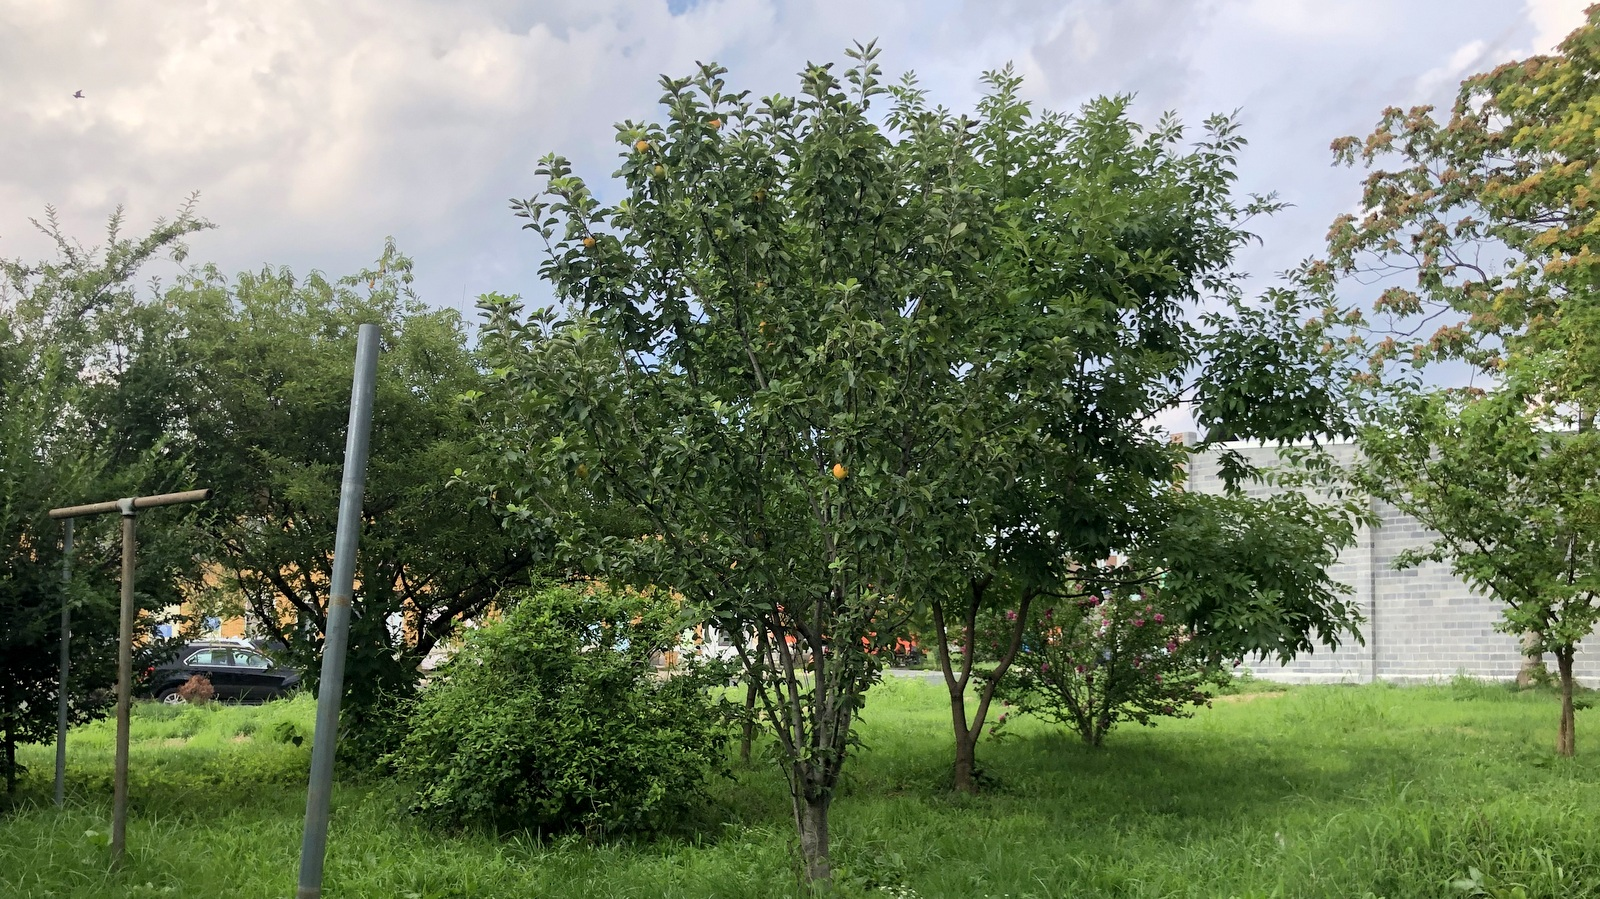 Pears are ripening at the Duncan Street Miracle Garden in Greenmount West. (Ian Round)